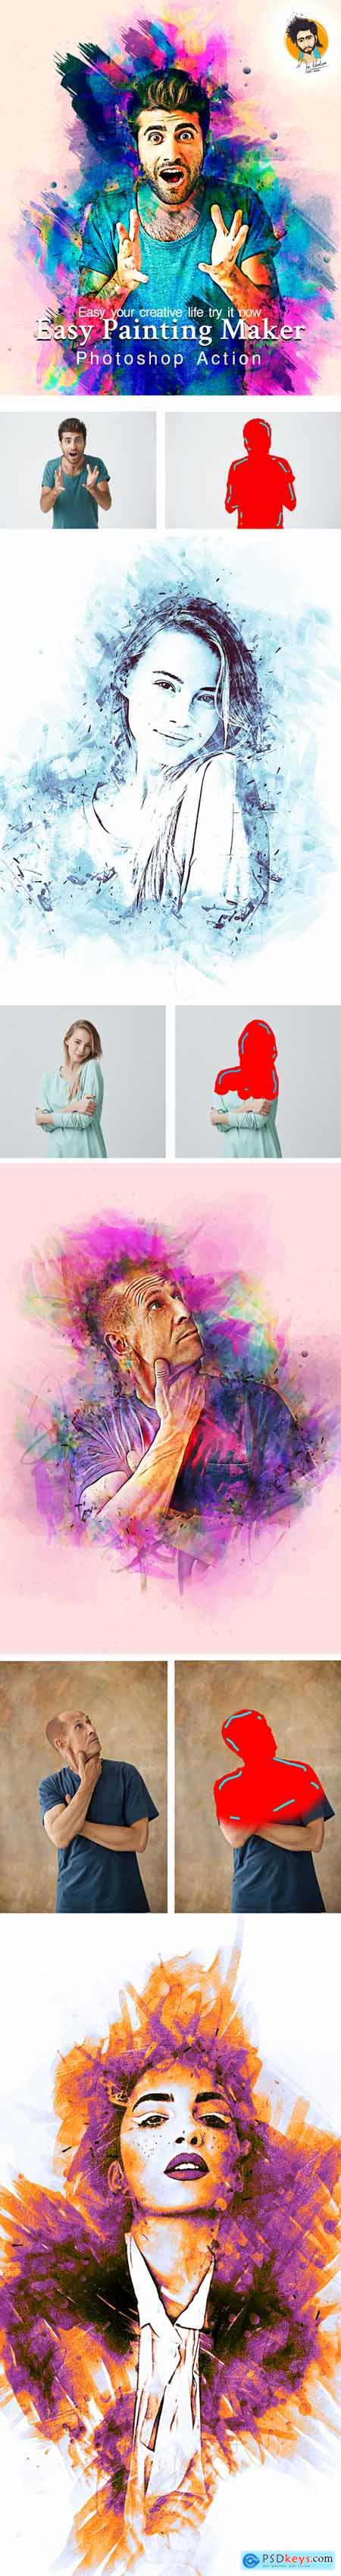 Easy Painting Maker Photoshop Action 28782459